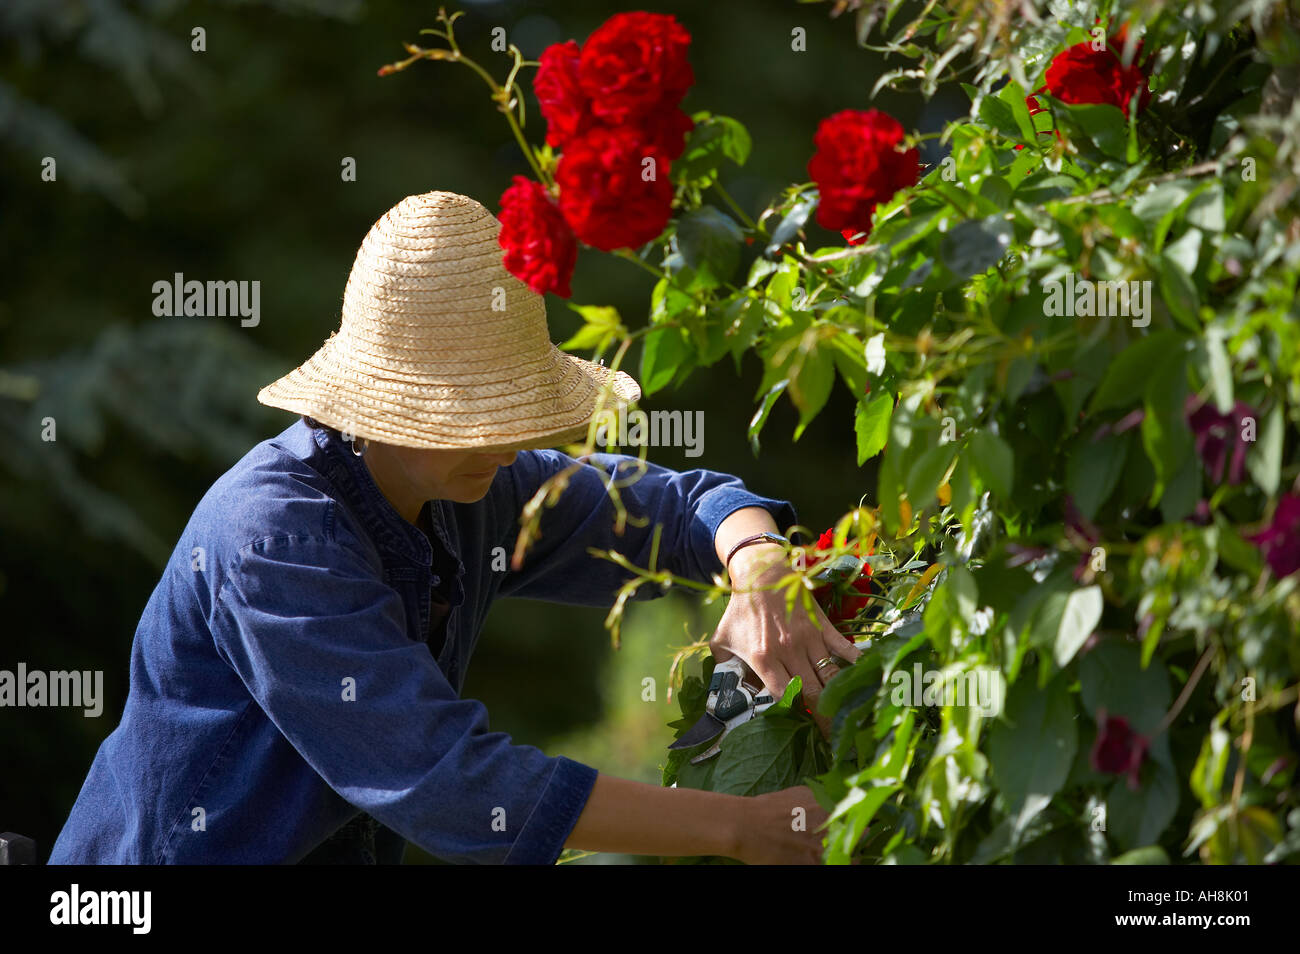 woman model released pruning roses in a garden Dorset England UK - Stock Image